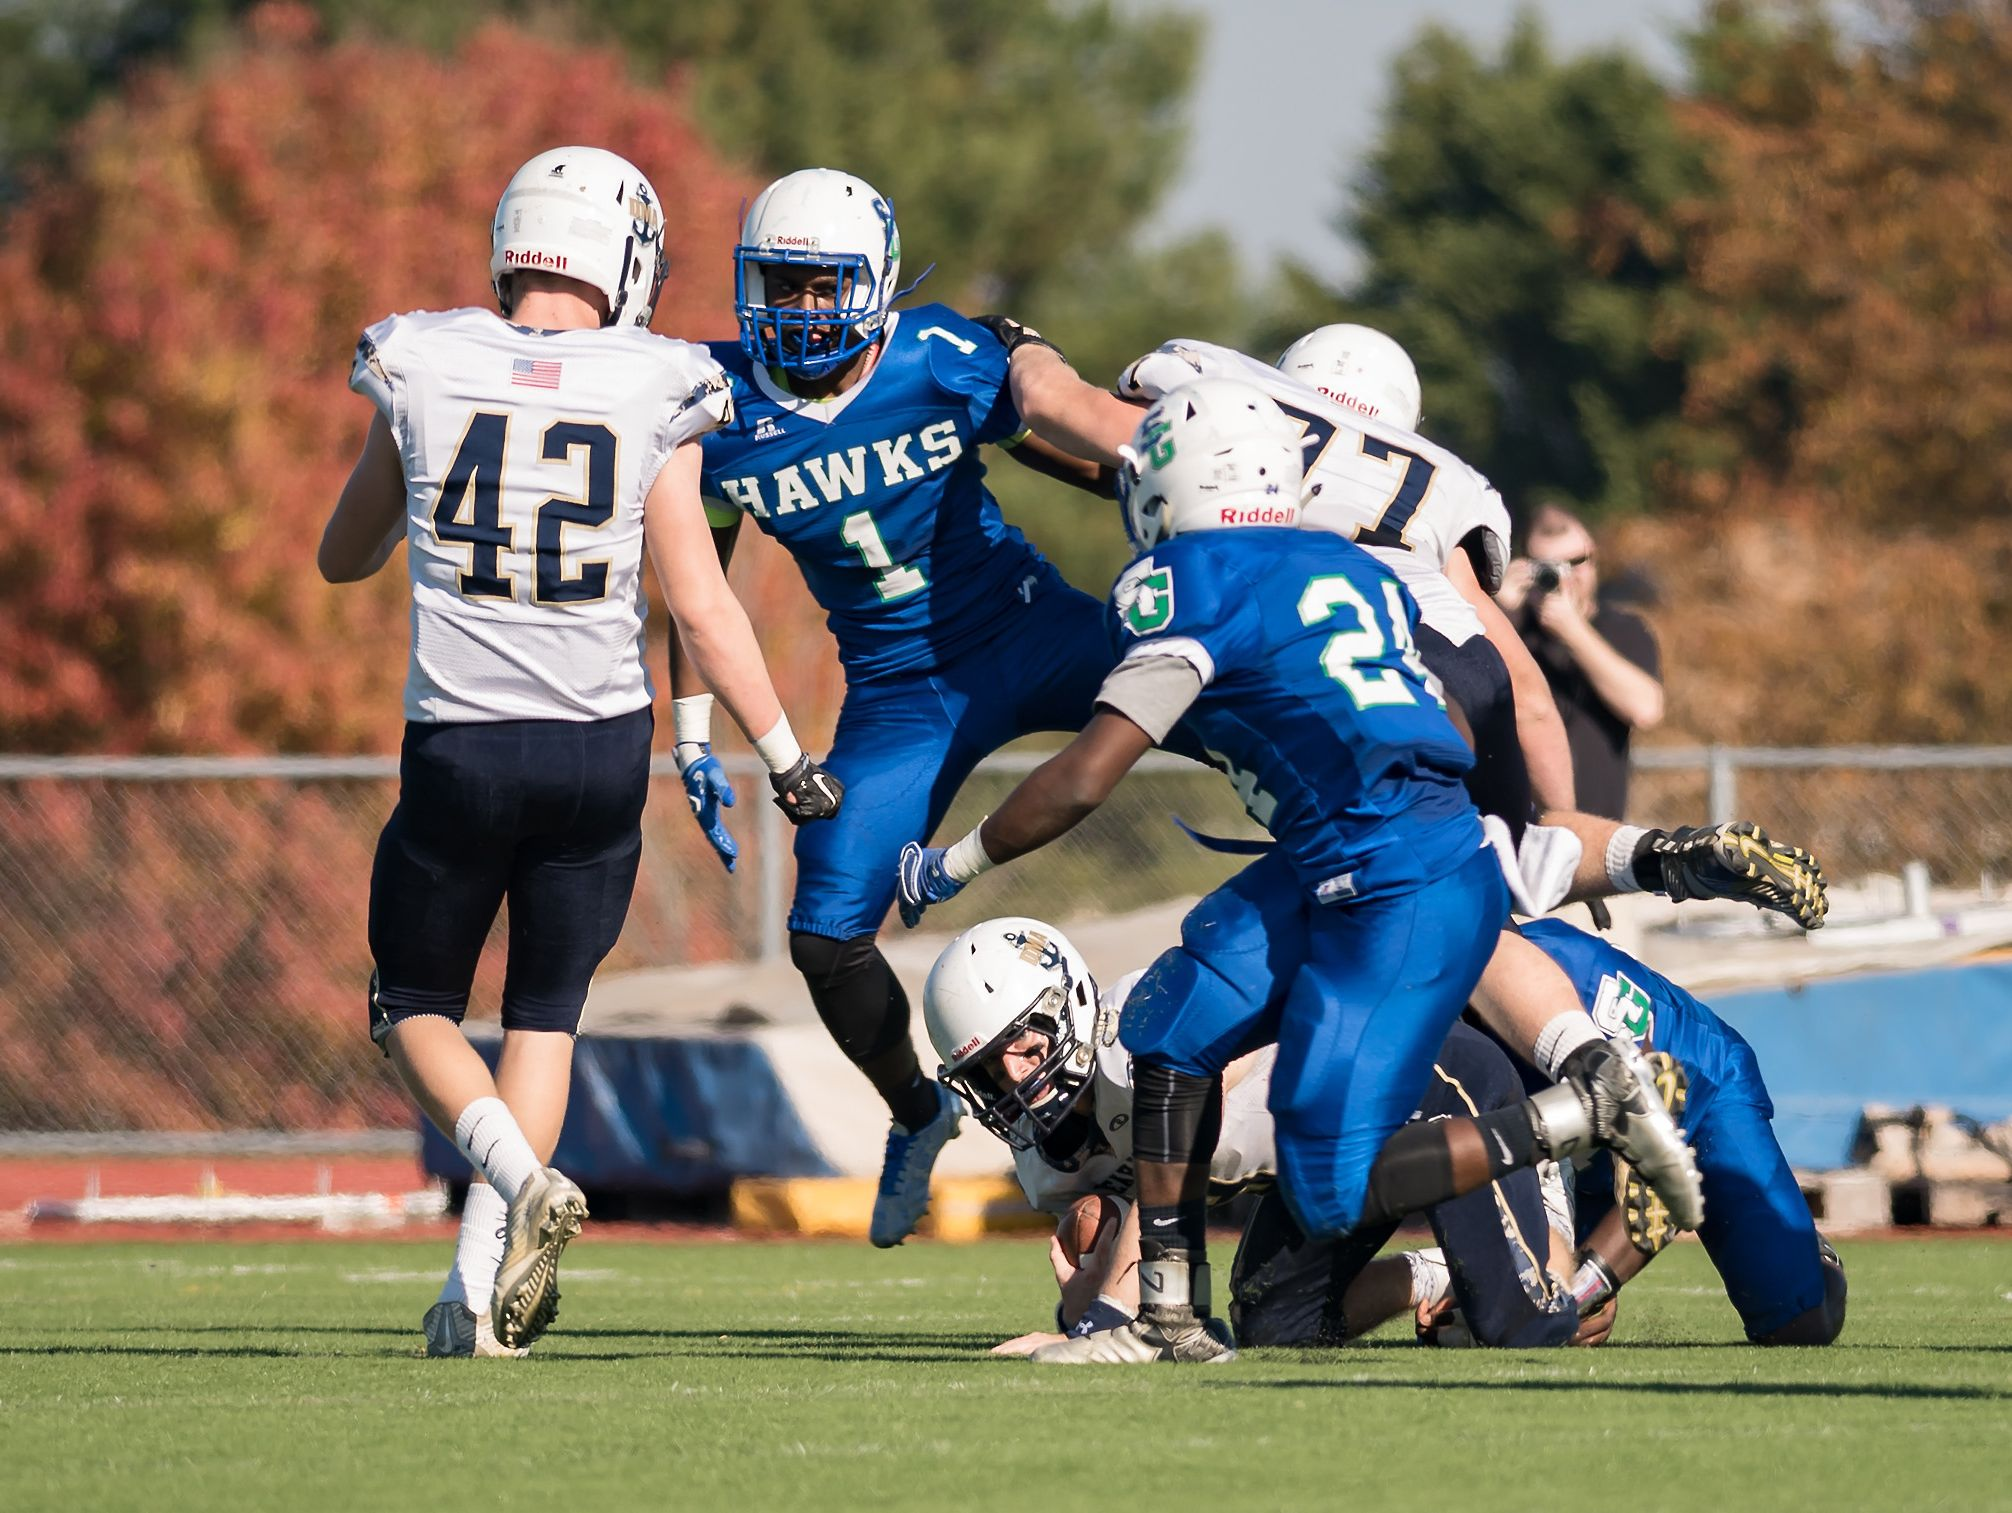 Craig Congo of St. Geroges leaps over Jacob Hudson of DMA as he is sacked as DMA plays at St. Georges in the opening round of DIAA Division II playoffs.